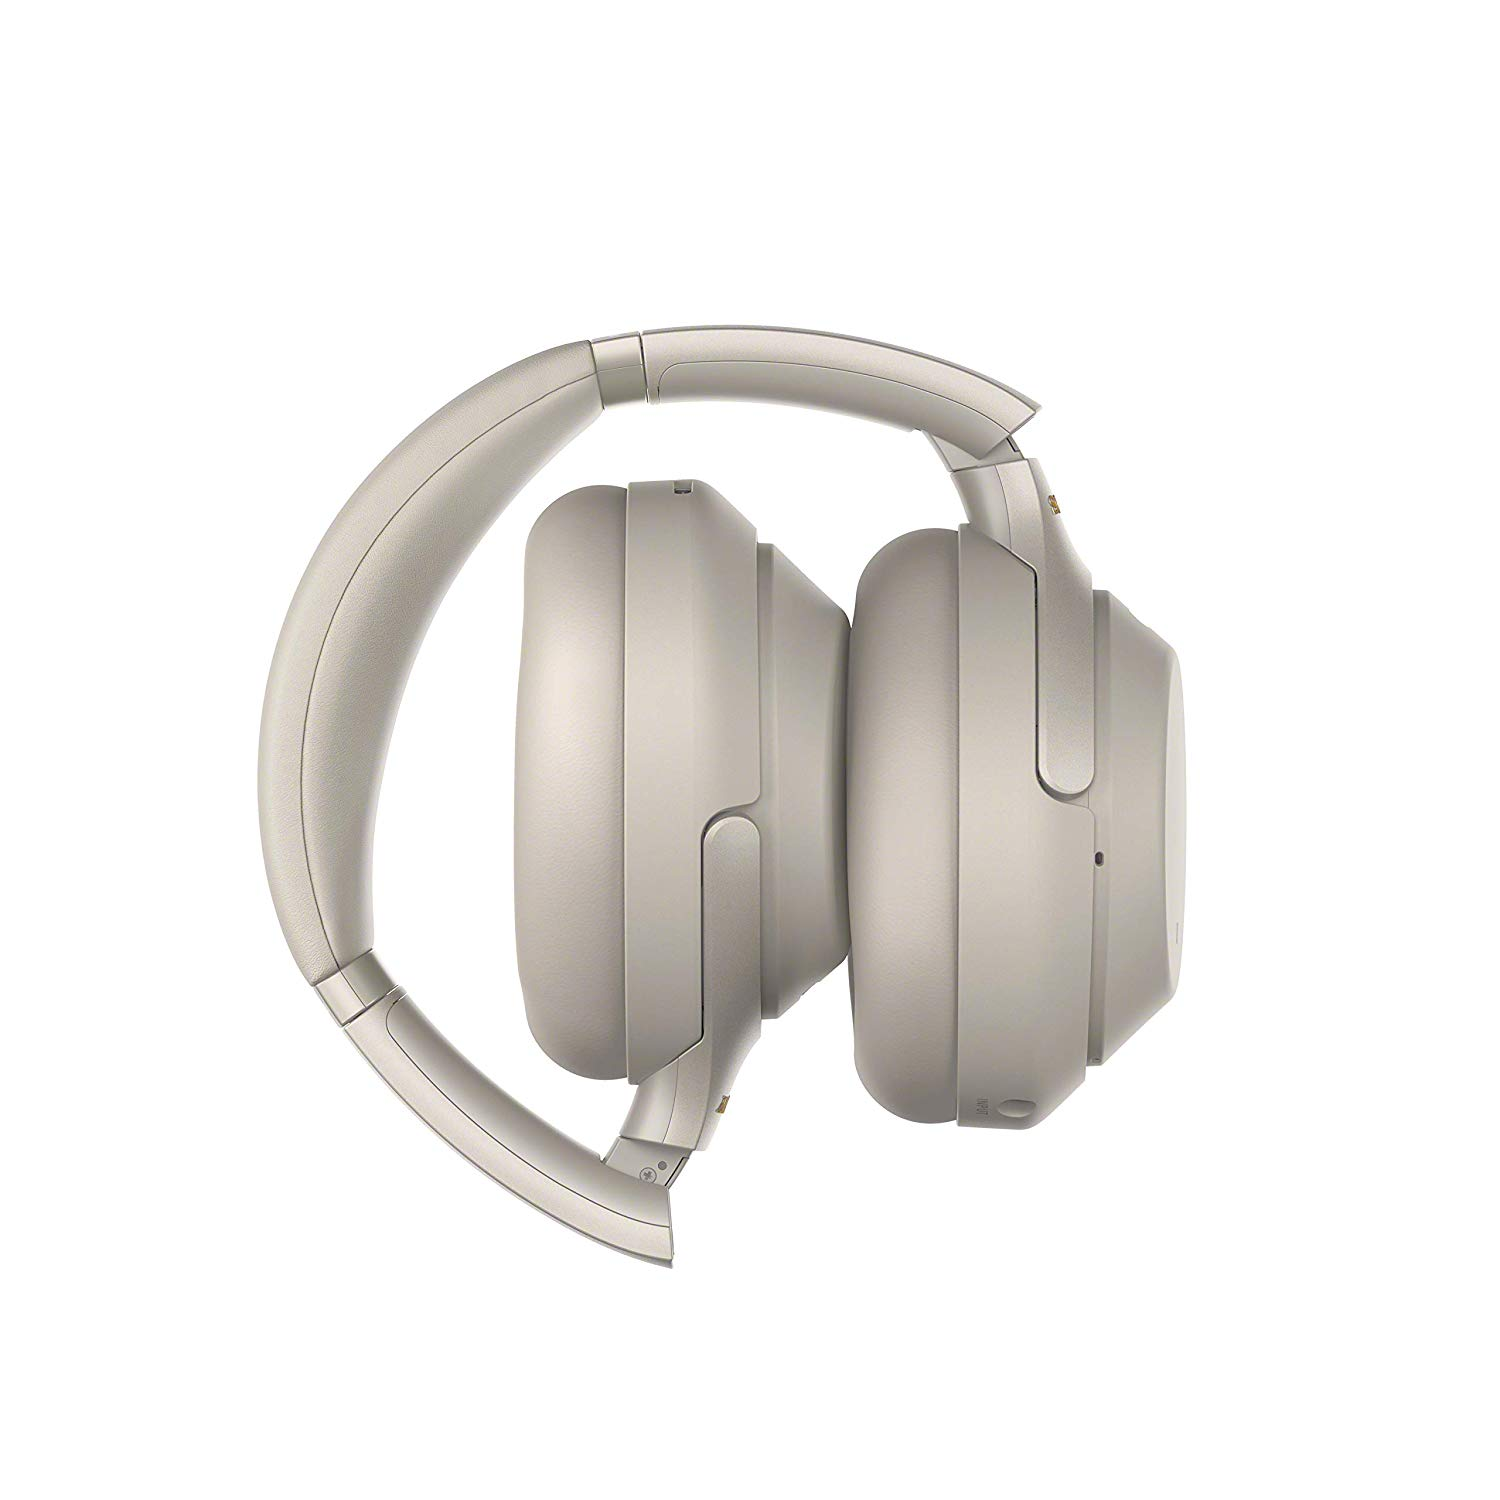 Sony-WH-1000XM3-Wireless-Noise-Canceling-Over-Ear-Headphones-w-Google-Assistant thumbnail 19